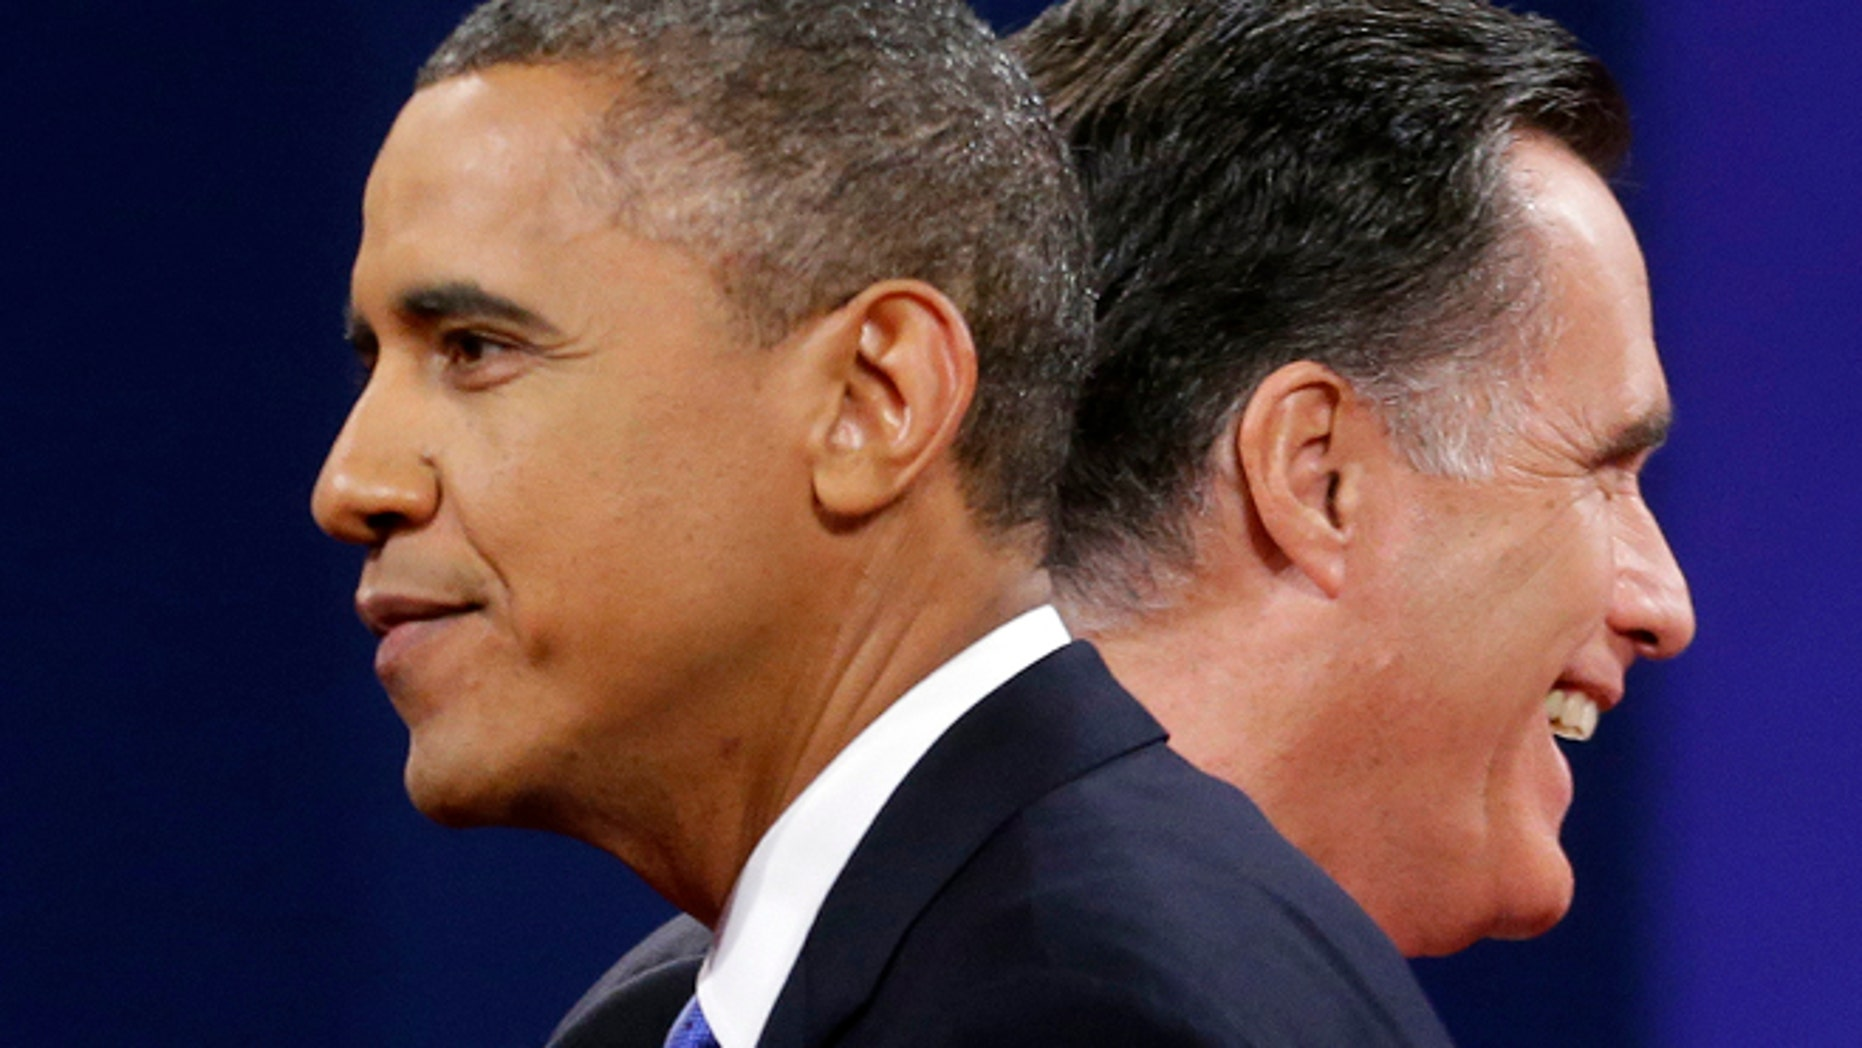 FILE: Oct 16, 2012: Mitt Romney and President Obama walks past each other at the end of their last debate at Lynn University, in Boca Raton, Fla.